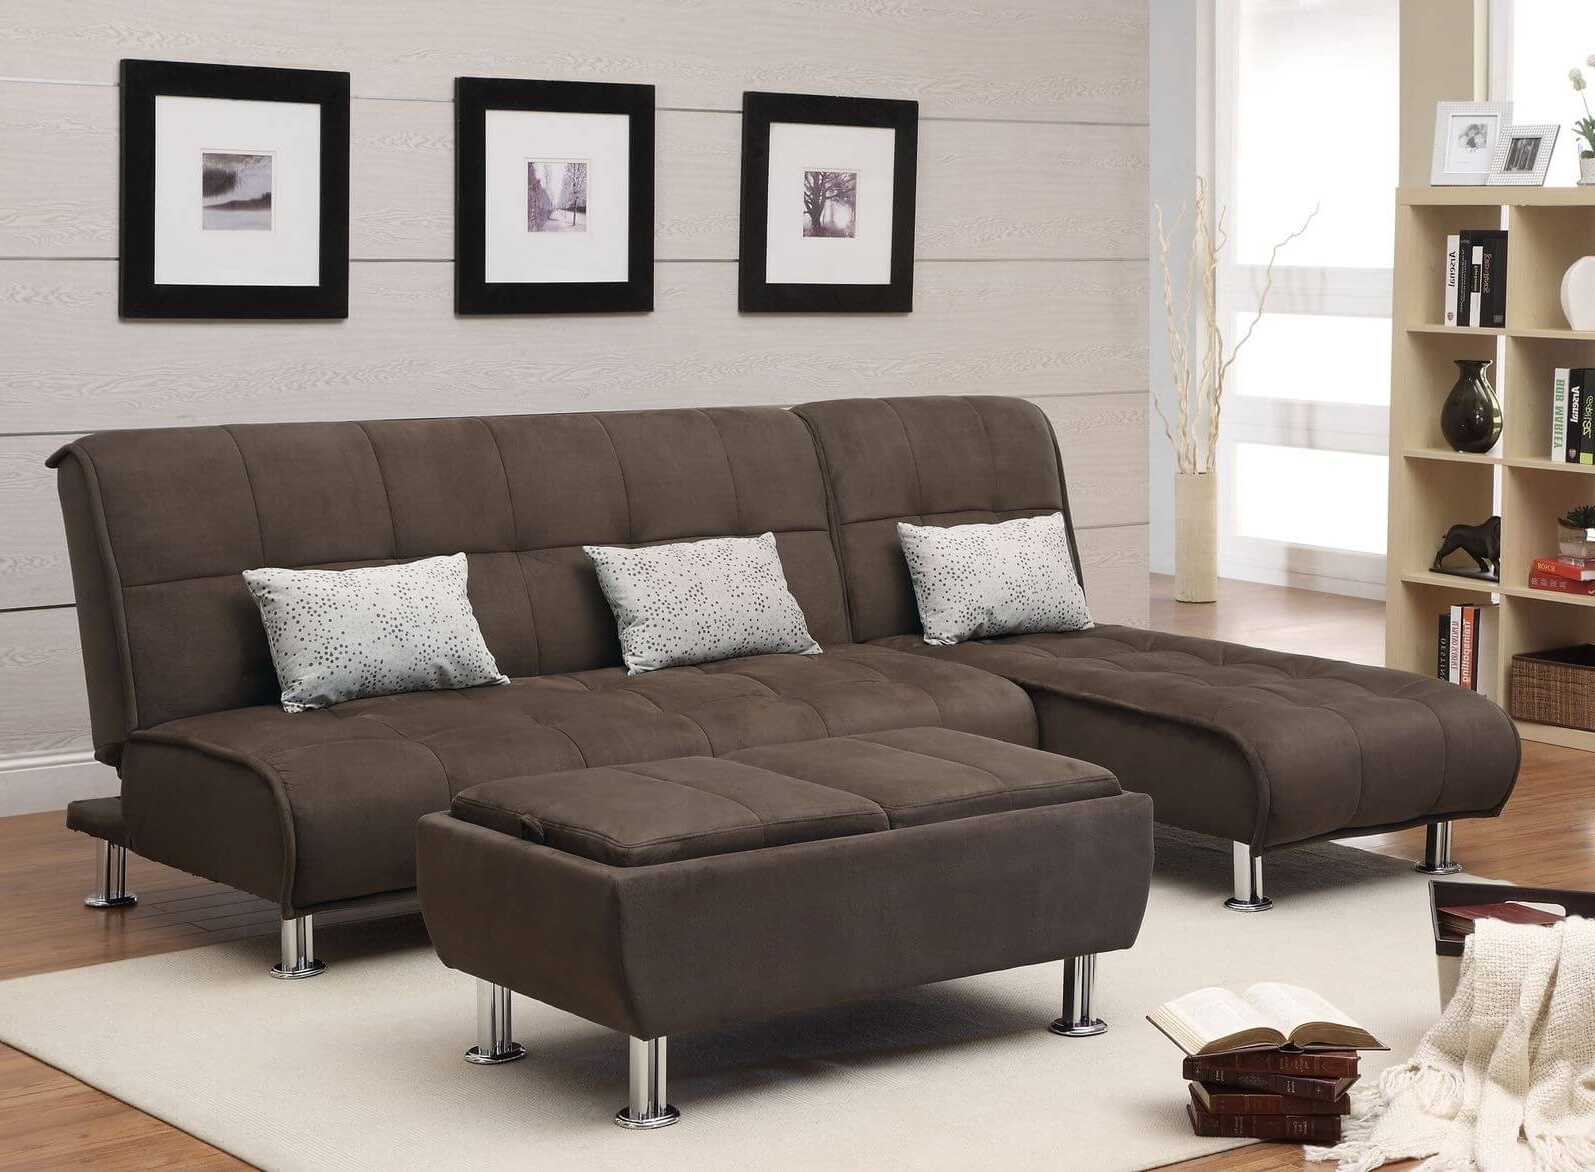 50 Beautiful Living Rooms With Ottoman Coffee Tables Within Popular Camel Colored Sectional Sofas (View 20 of 20)